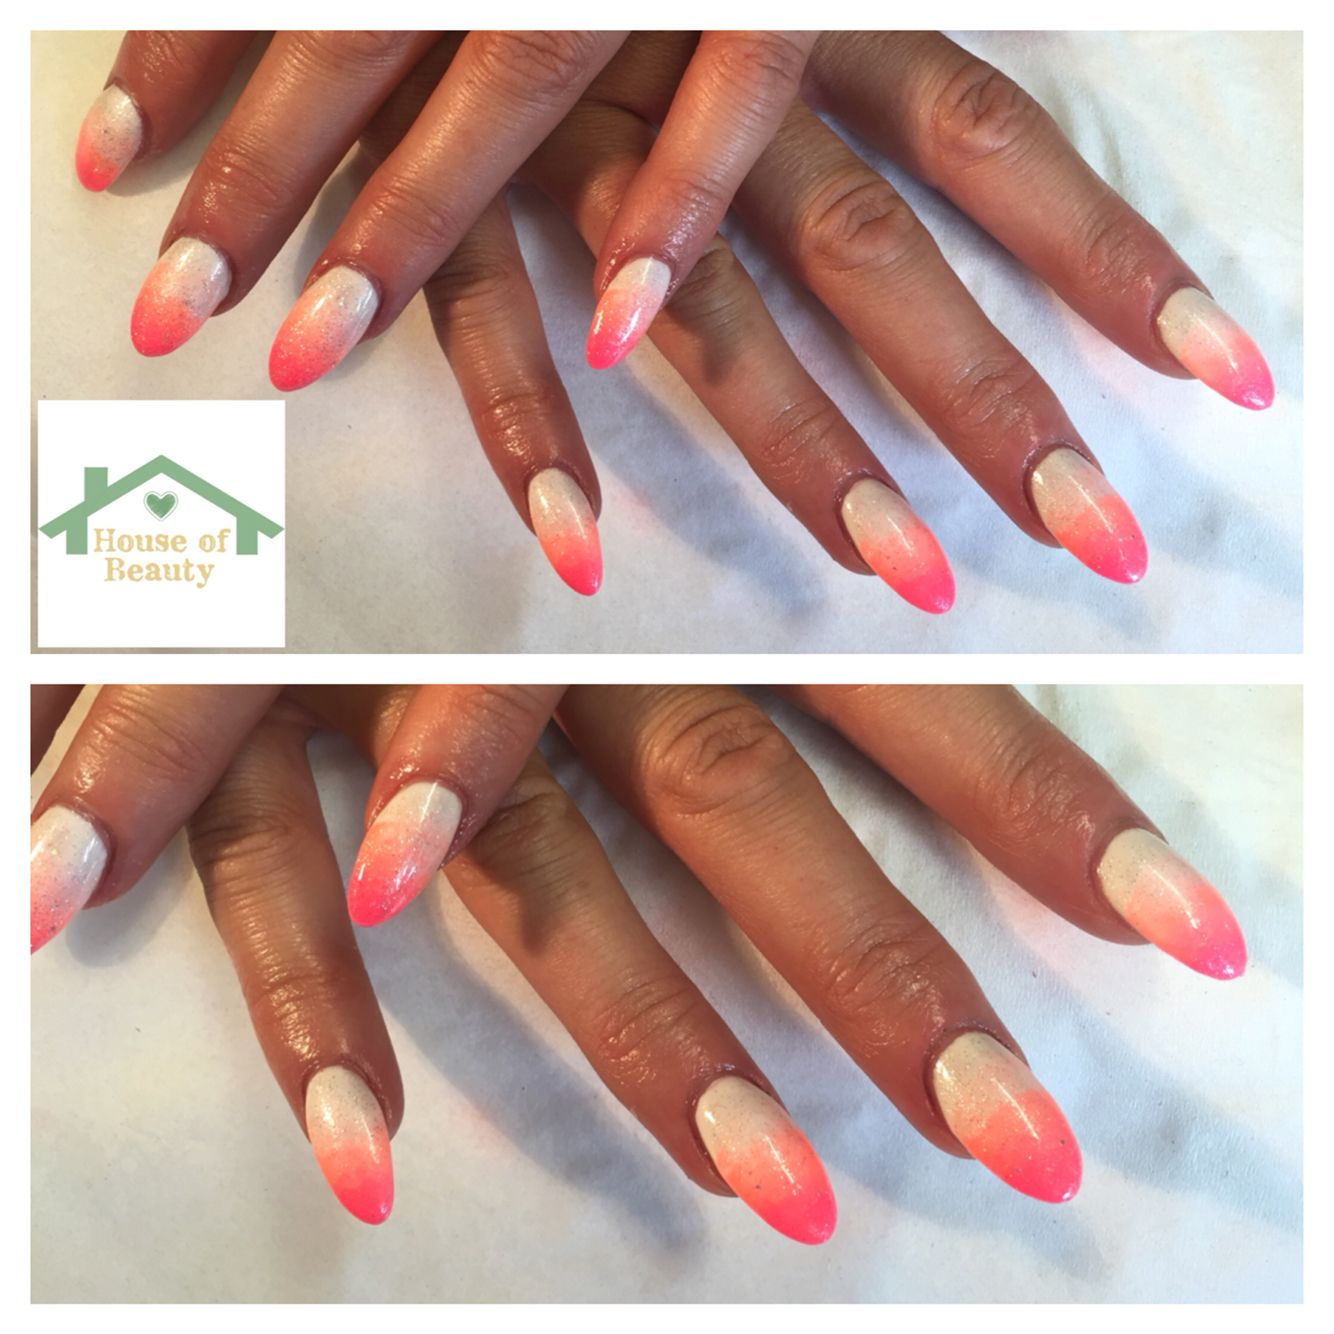 Inails express acrylic extensions with Gelish polish #gelish ...